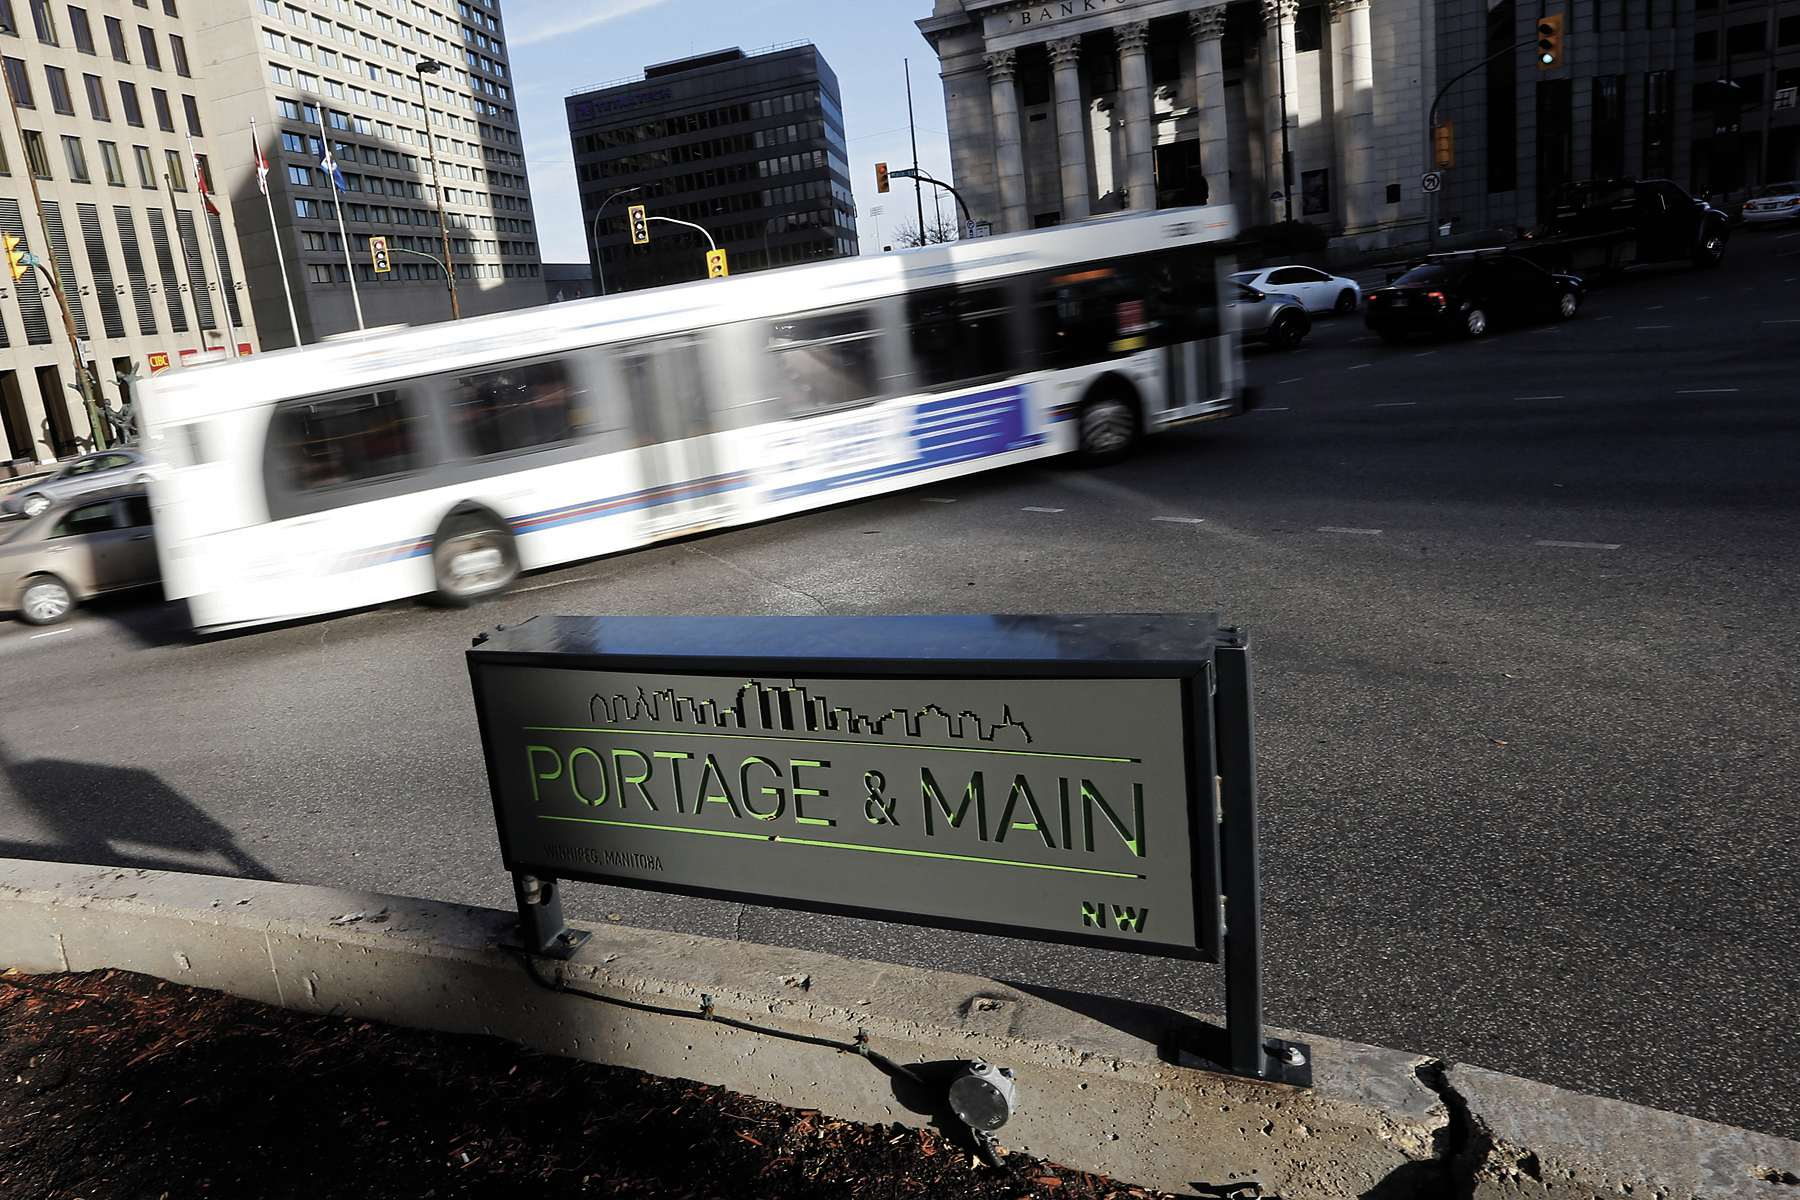 The public should be asked whether it approves of re-opening Portage and Main to foot traffic in the Oct. 24 civic election.